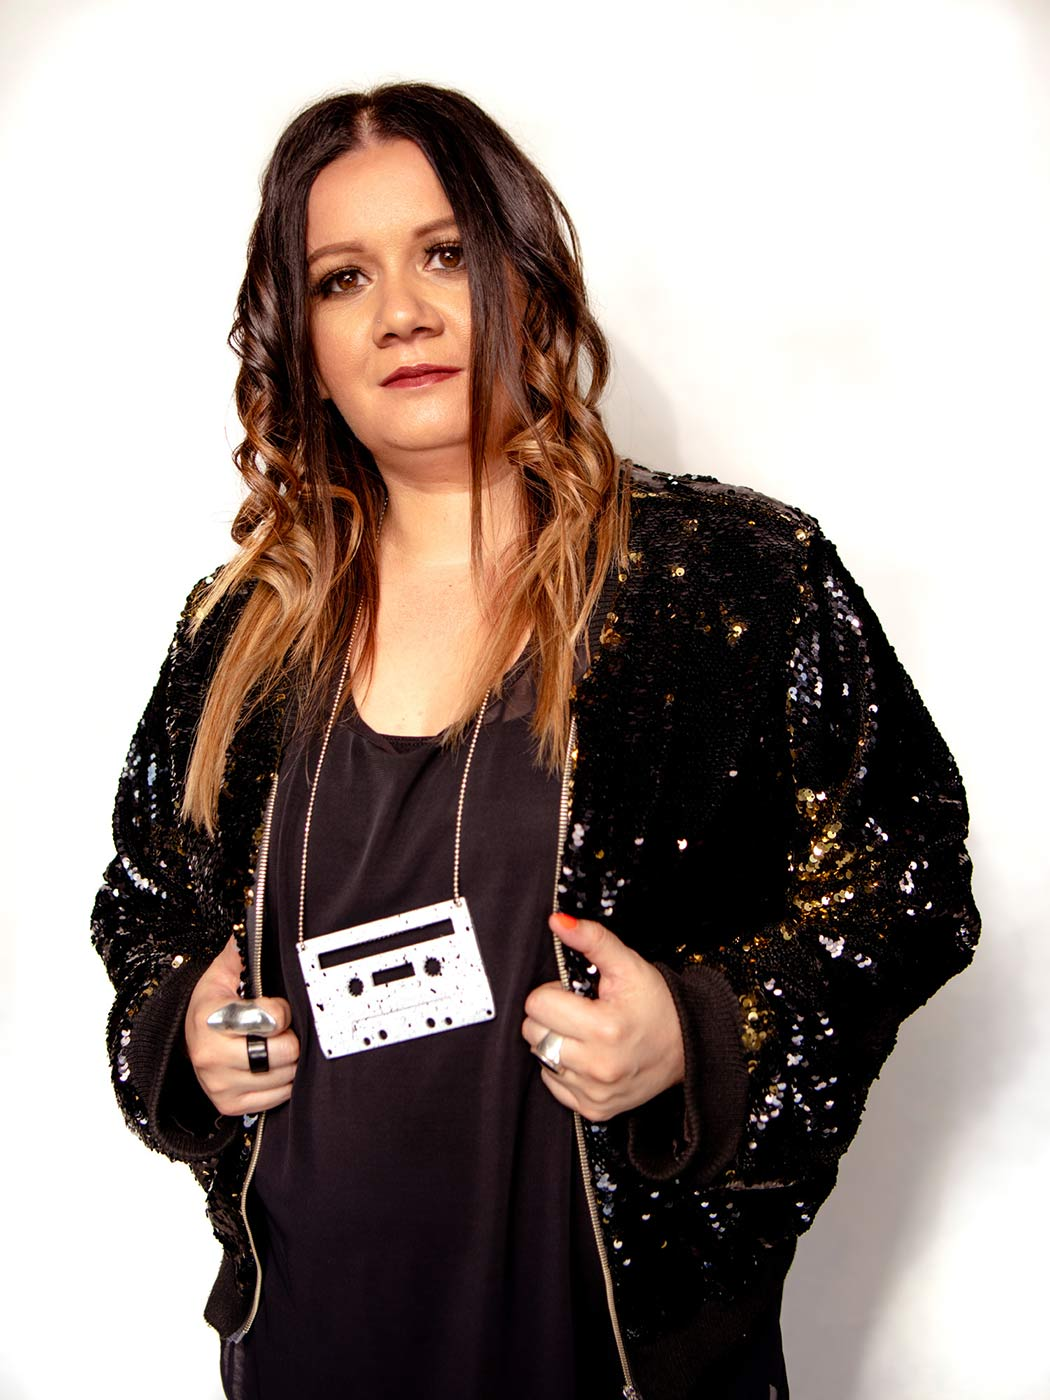 Portrait of a woman wearing a sequinned jacket and a necklace made from a cassette tape. - click to view larger image